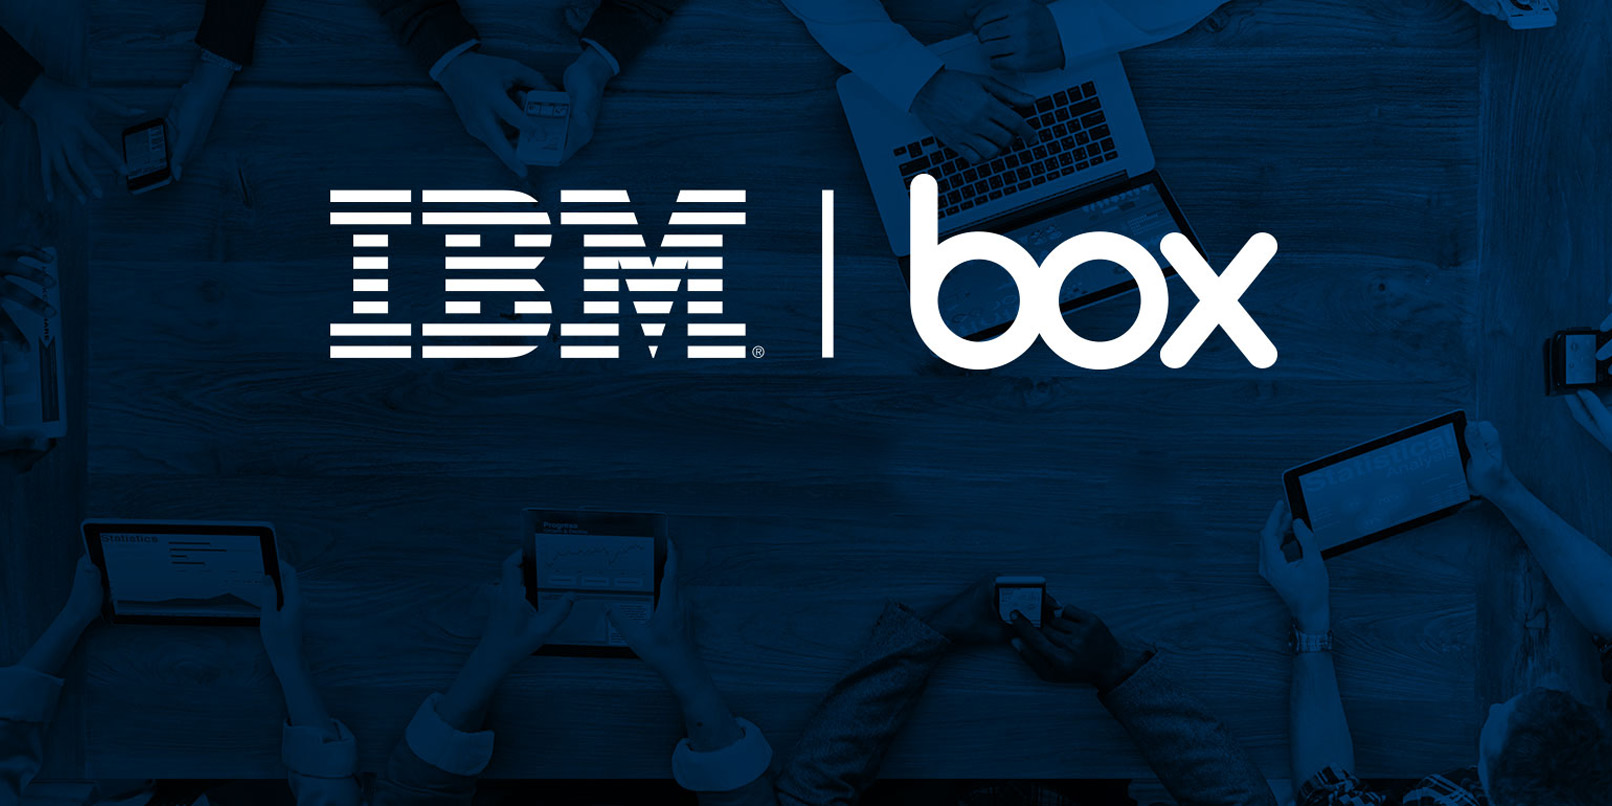 Box is teaming up with IBM to sell cloud services together